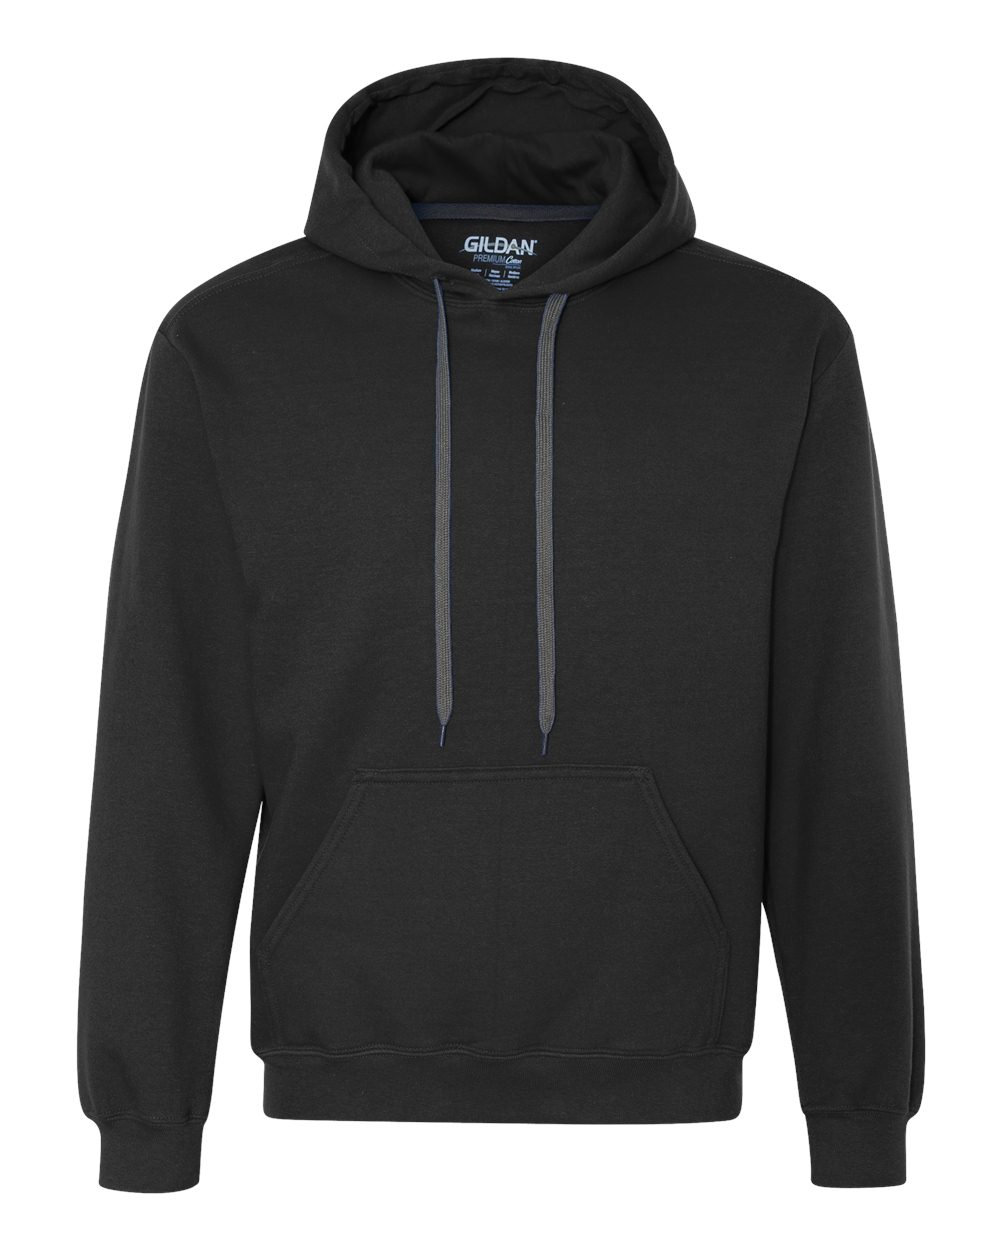 Picture of Gildan Premium Cotton Ring Spun Fleece Hooded Sweatshirt